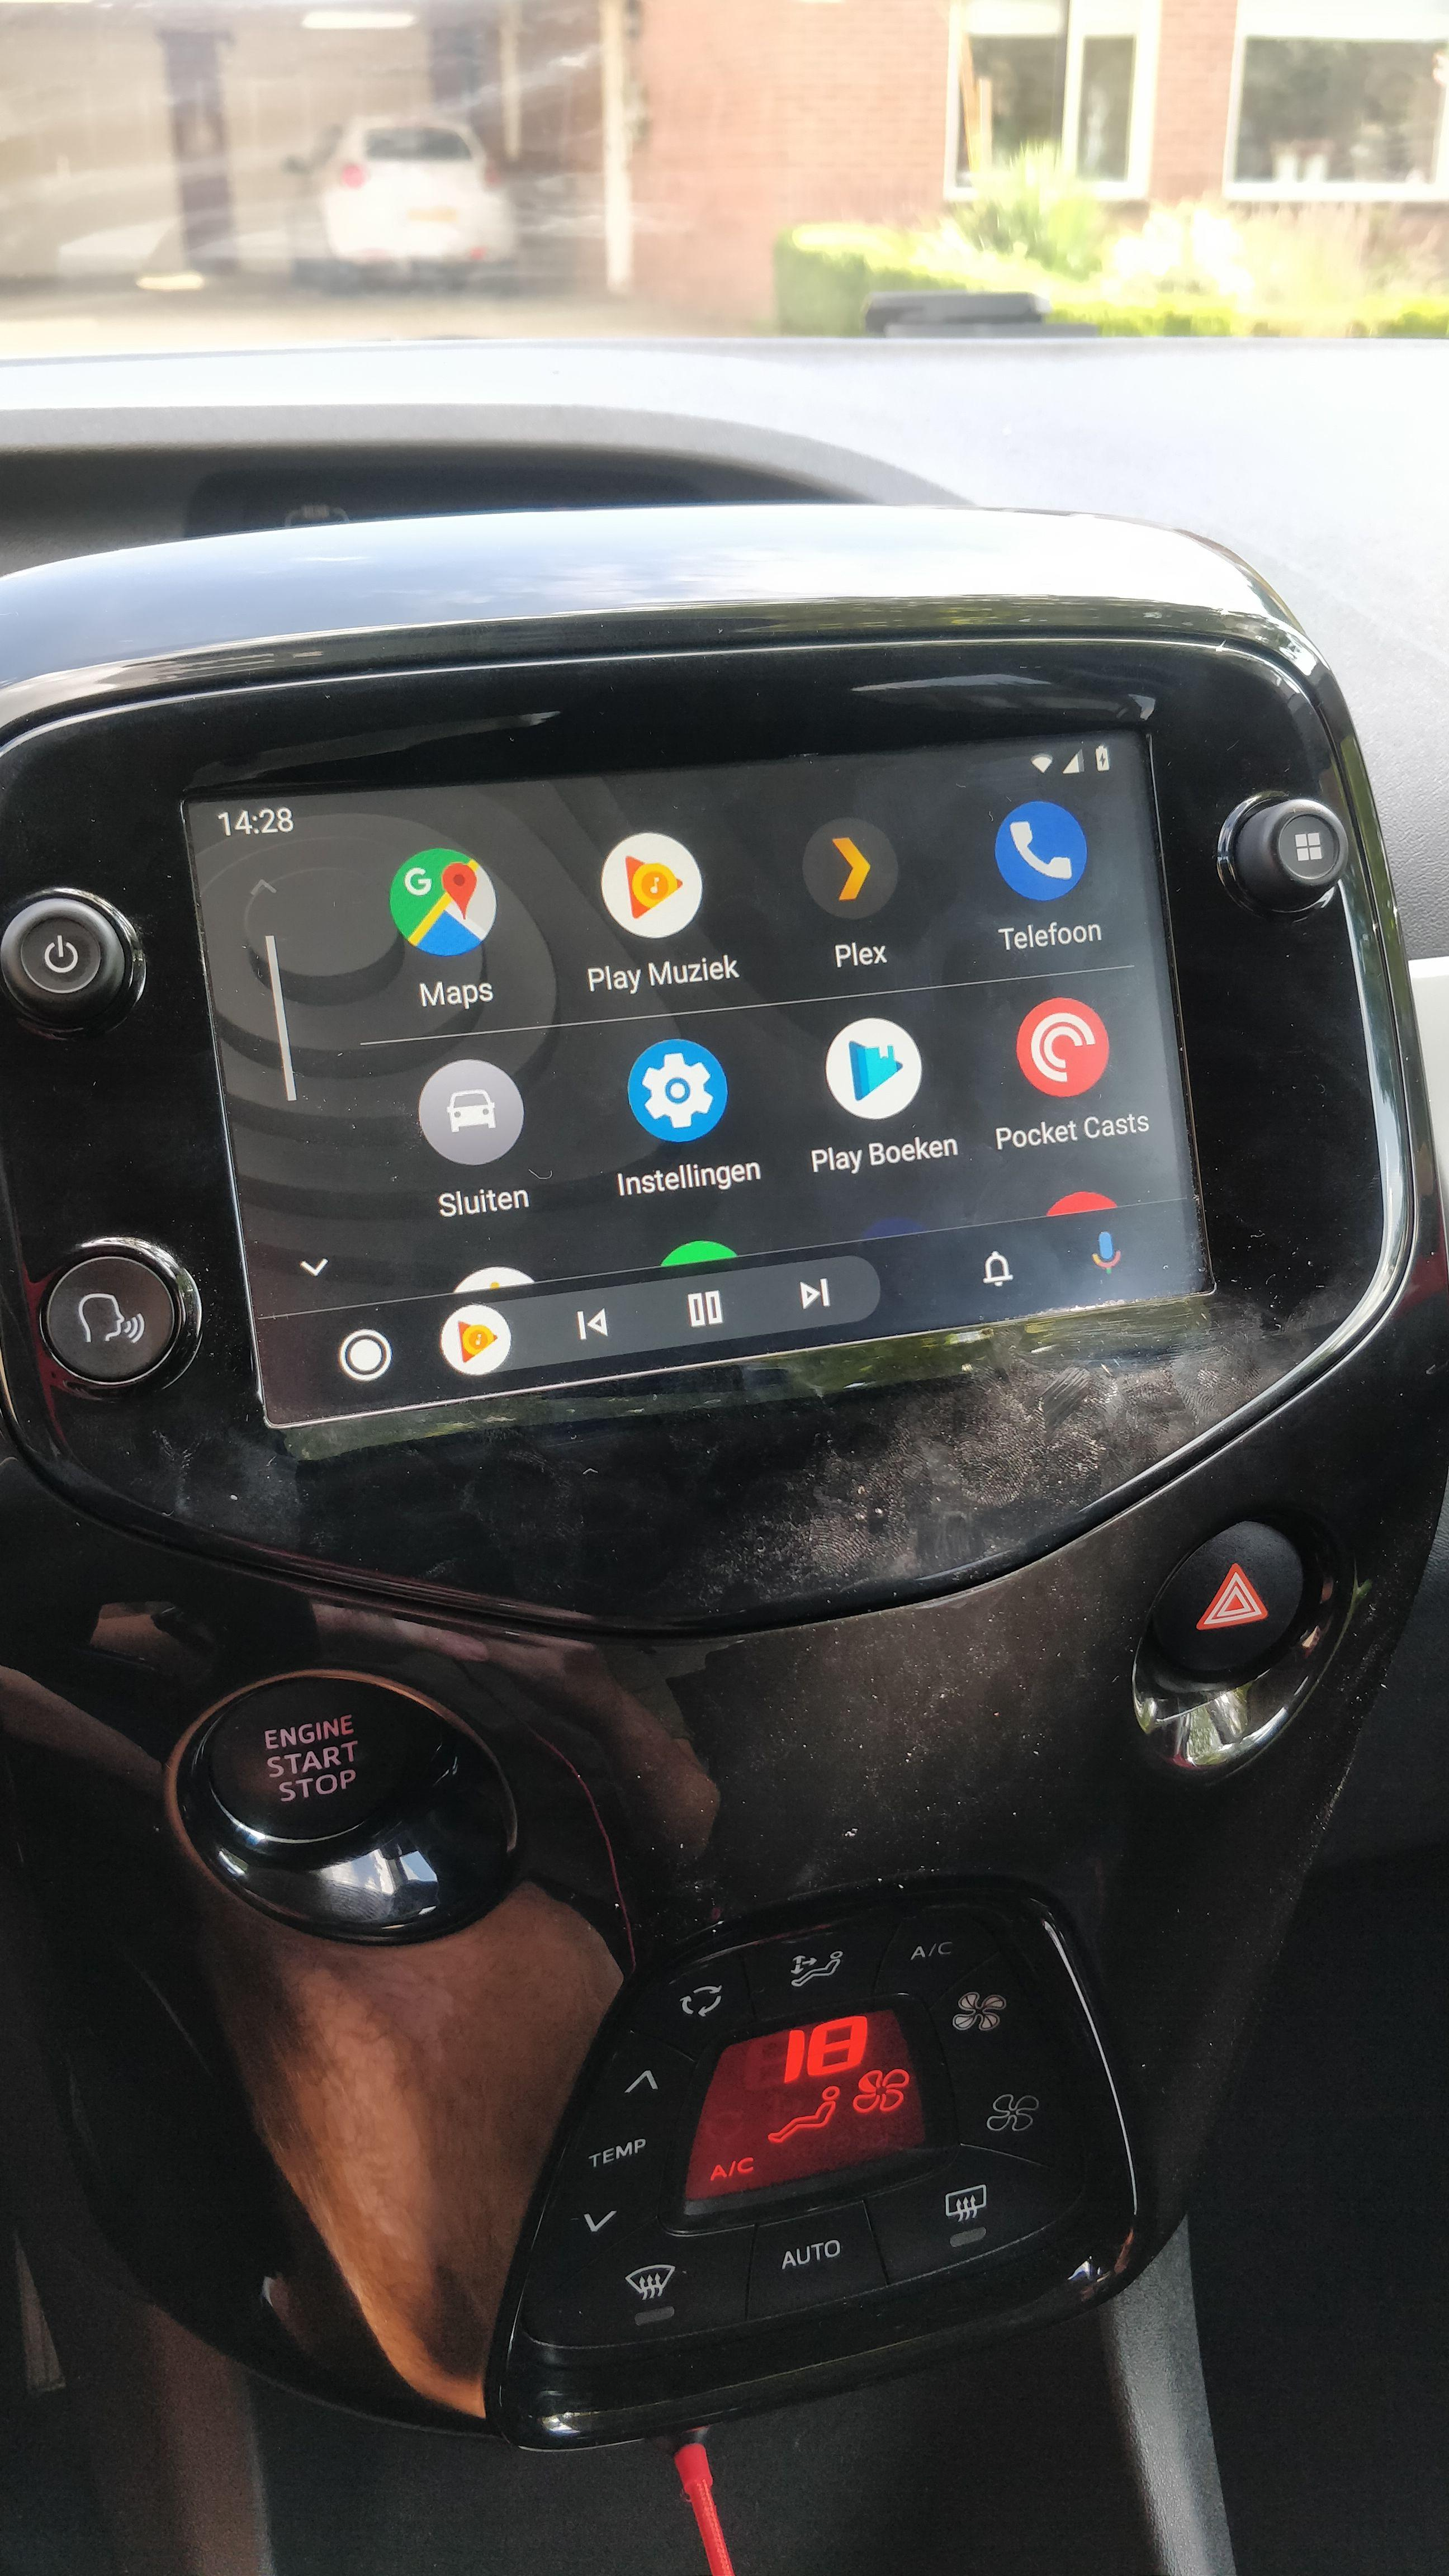 Do you think that Aygo 2016s will get Apple CarPlay Update